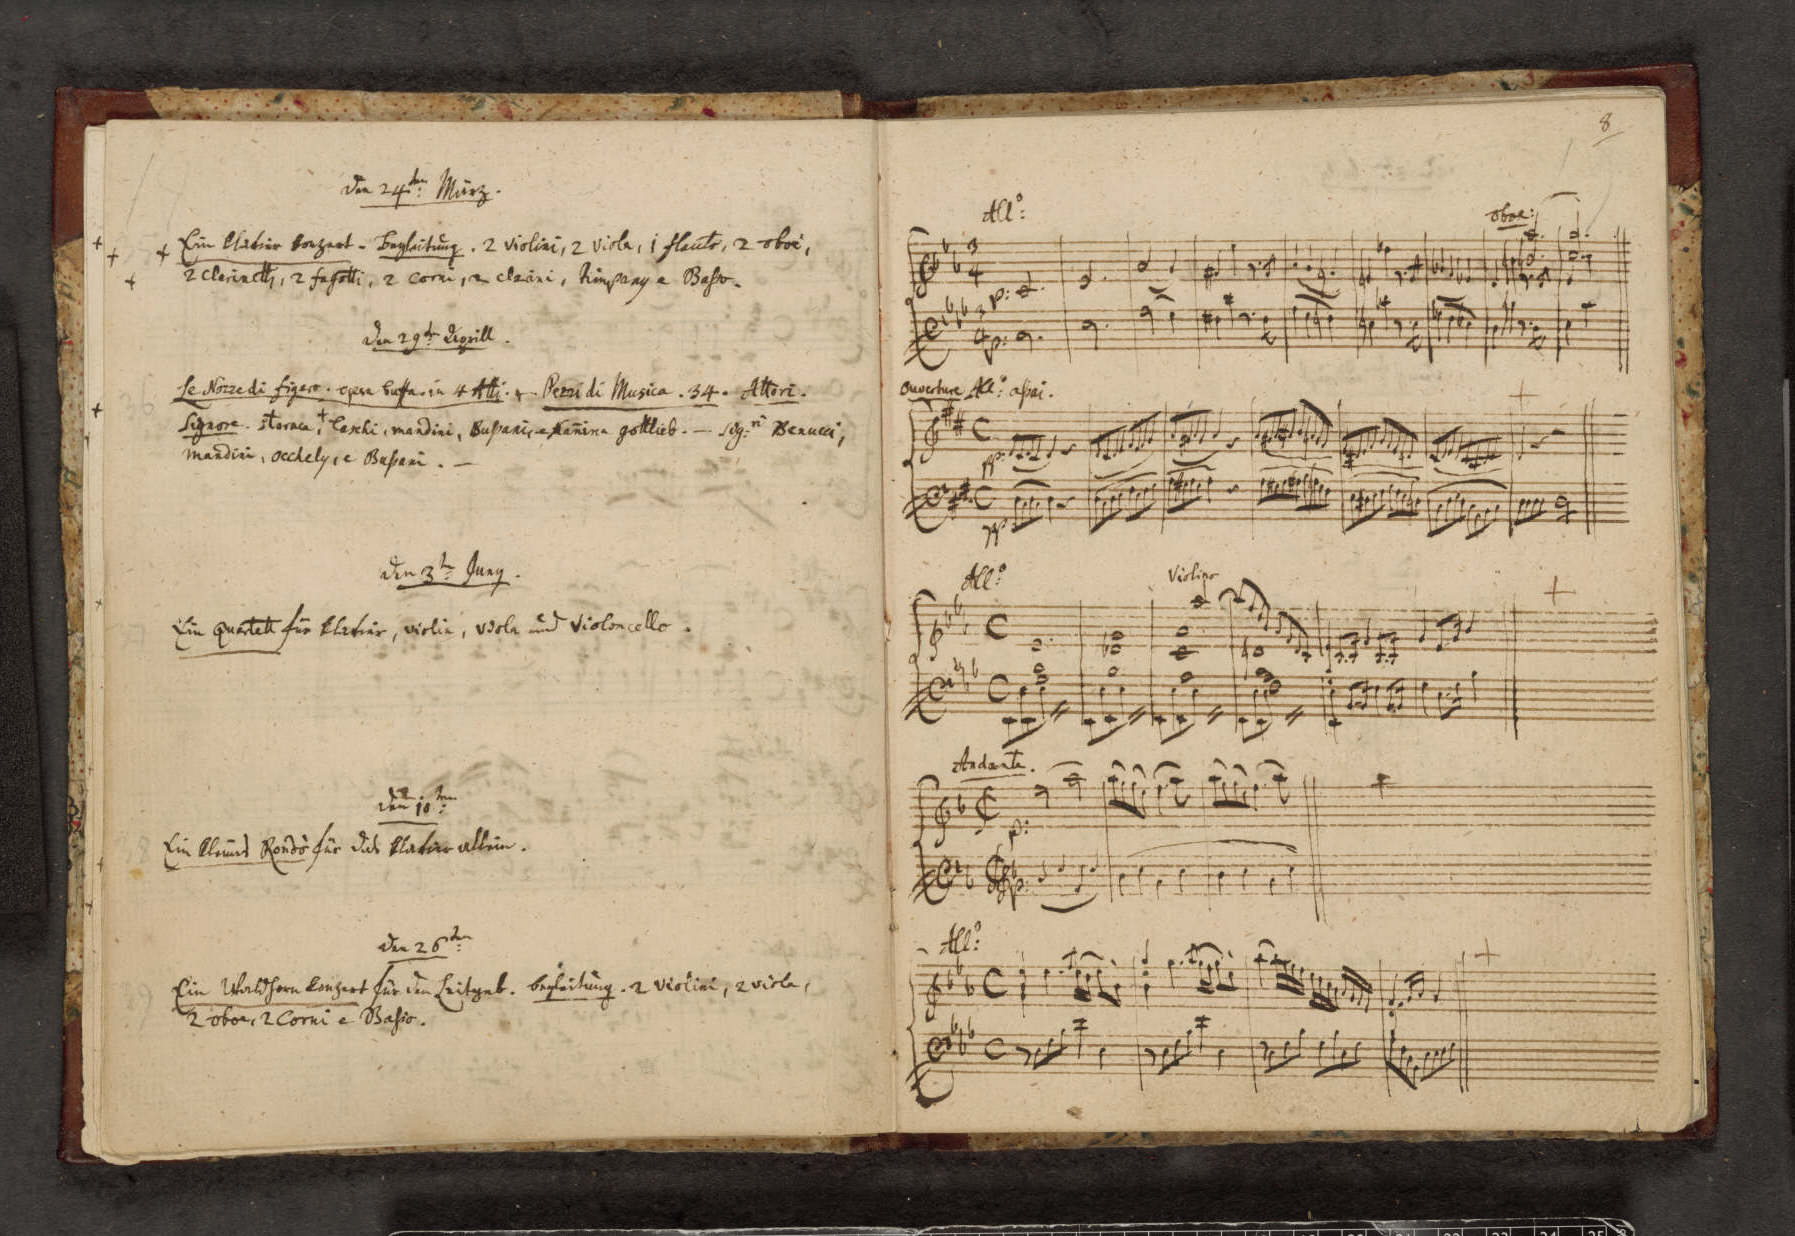 Mozart's notebook